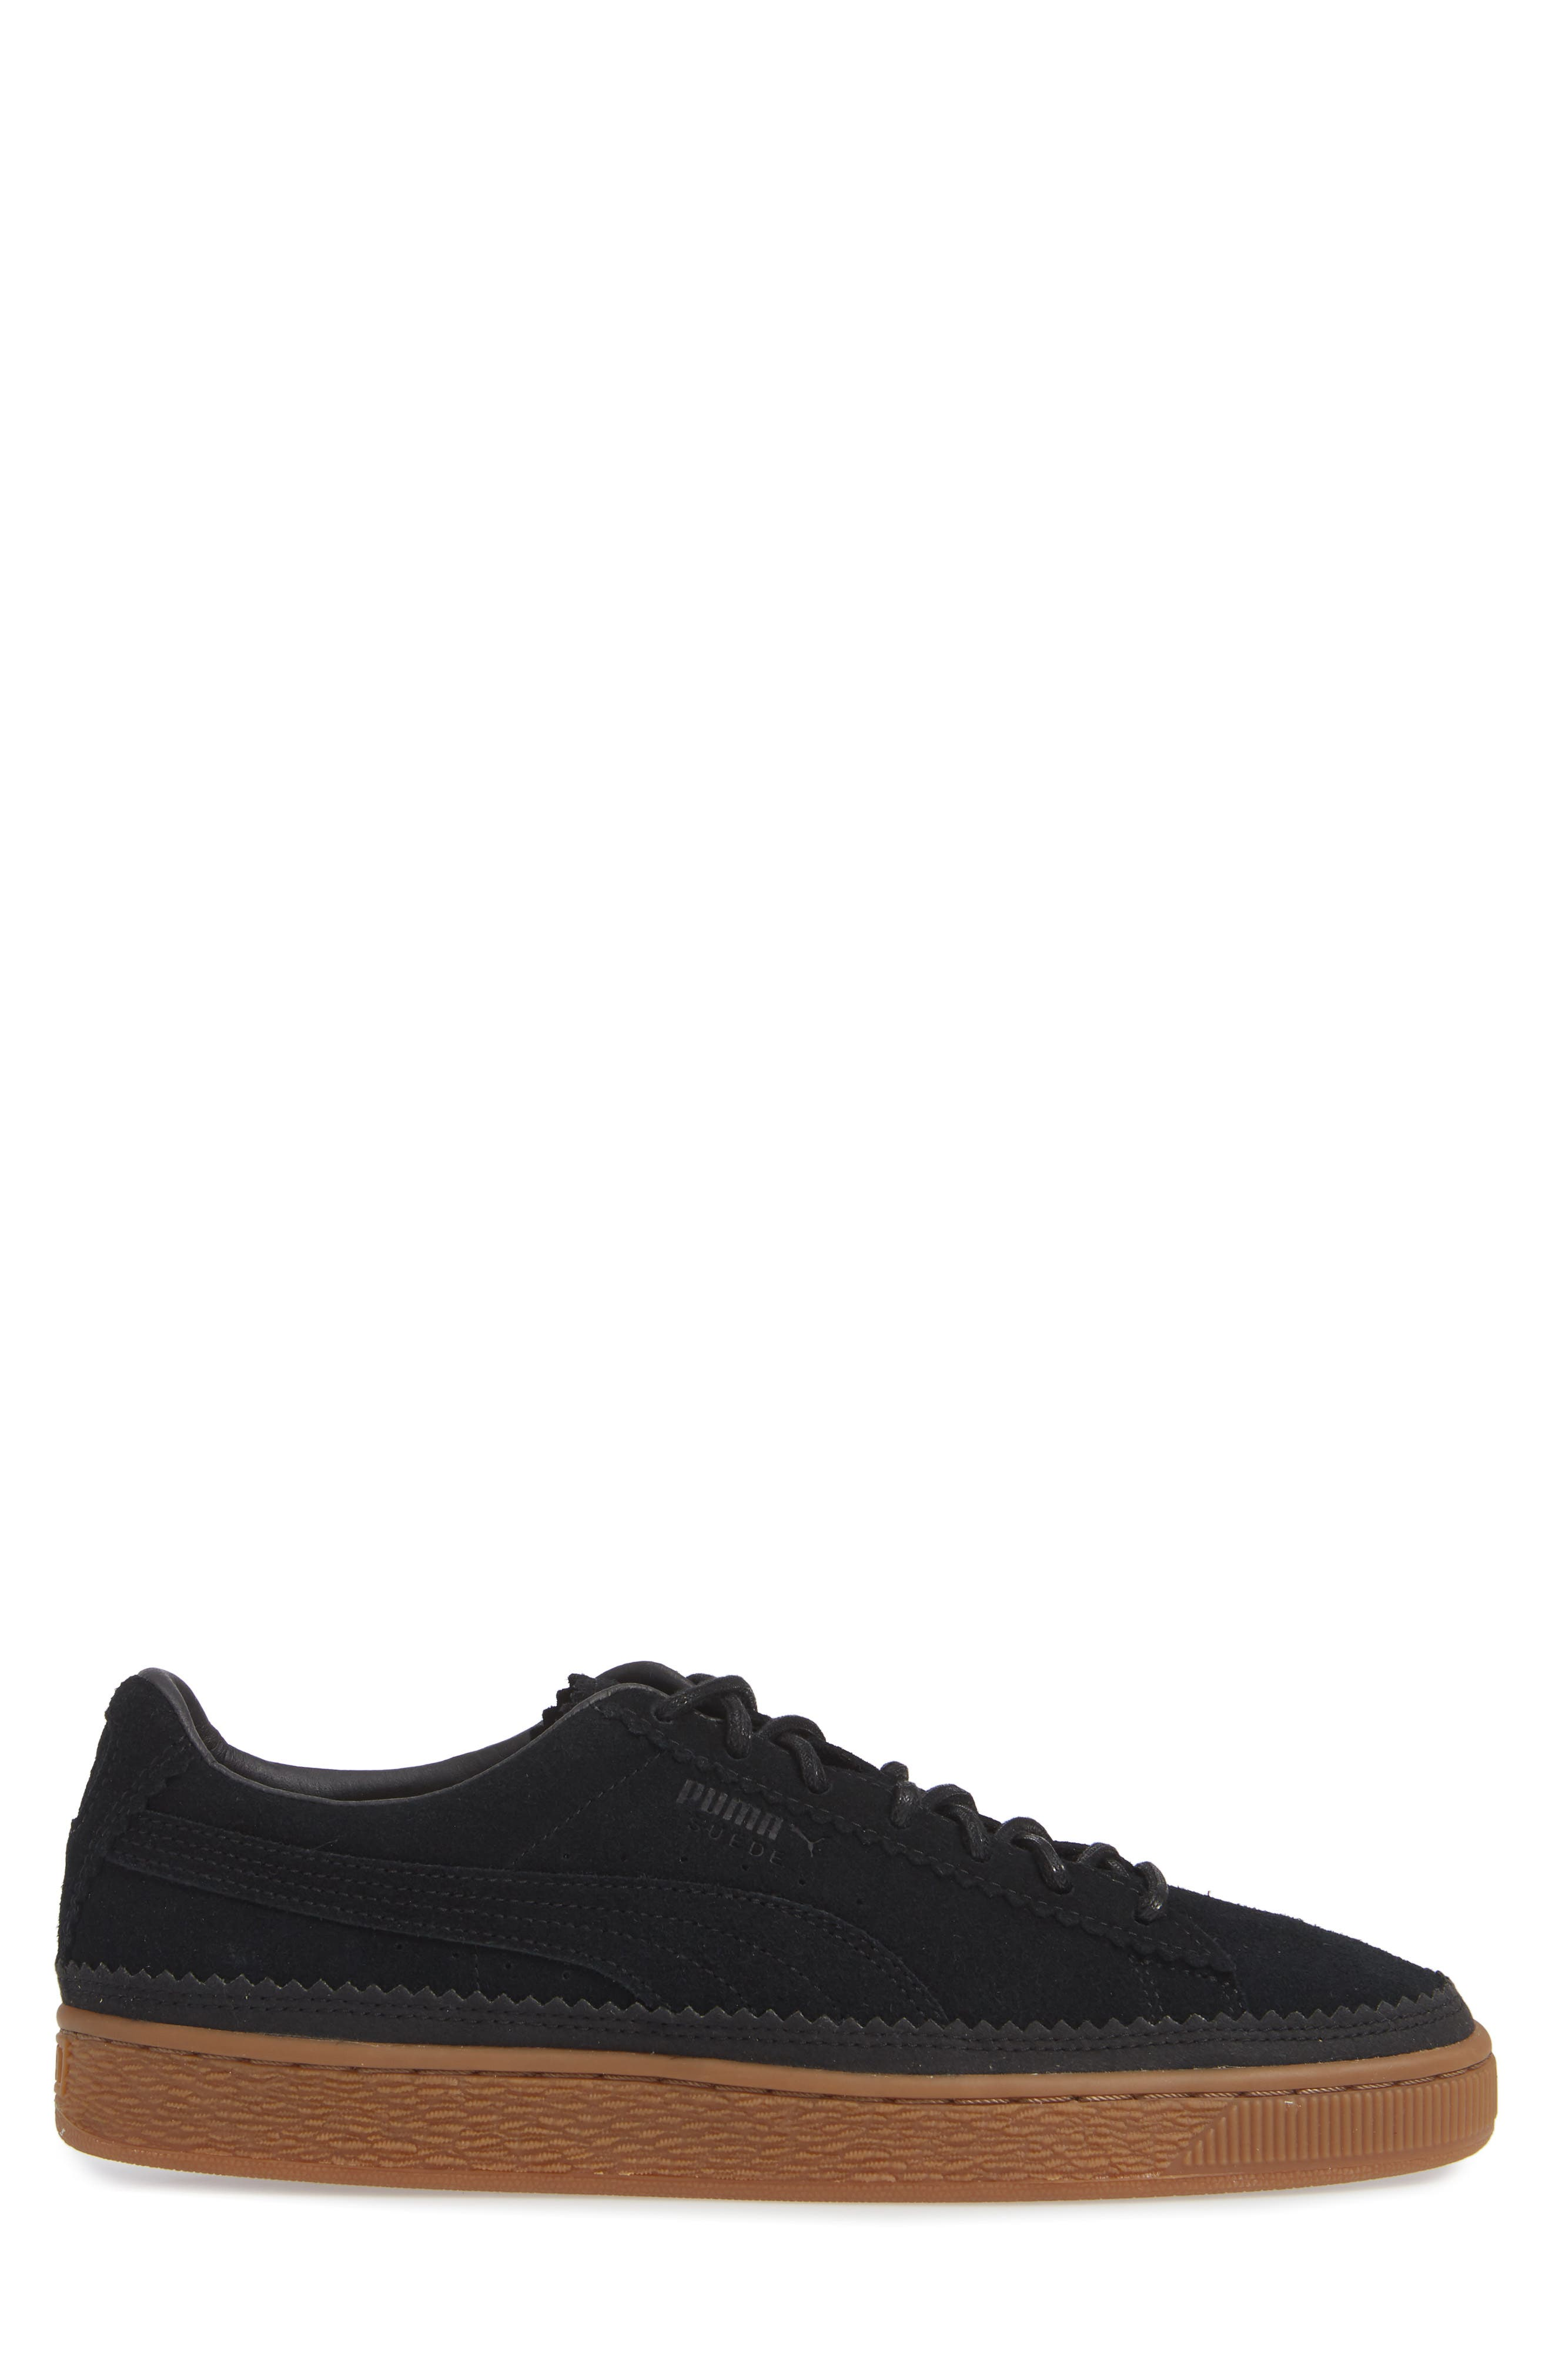 Suede Sneaker,                             Alternate thumbnail 3, color,                             BLACK/ BLACK